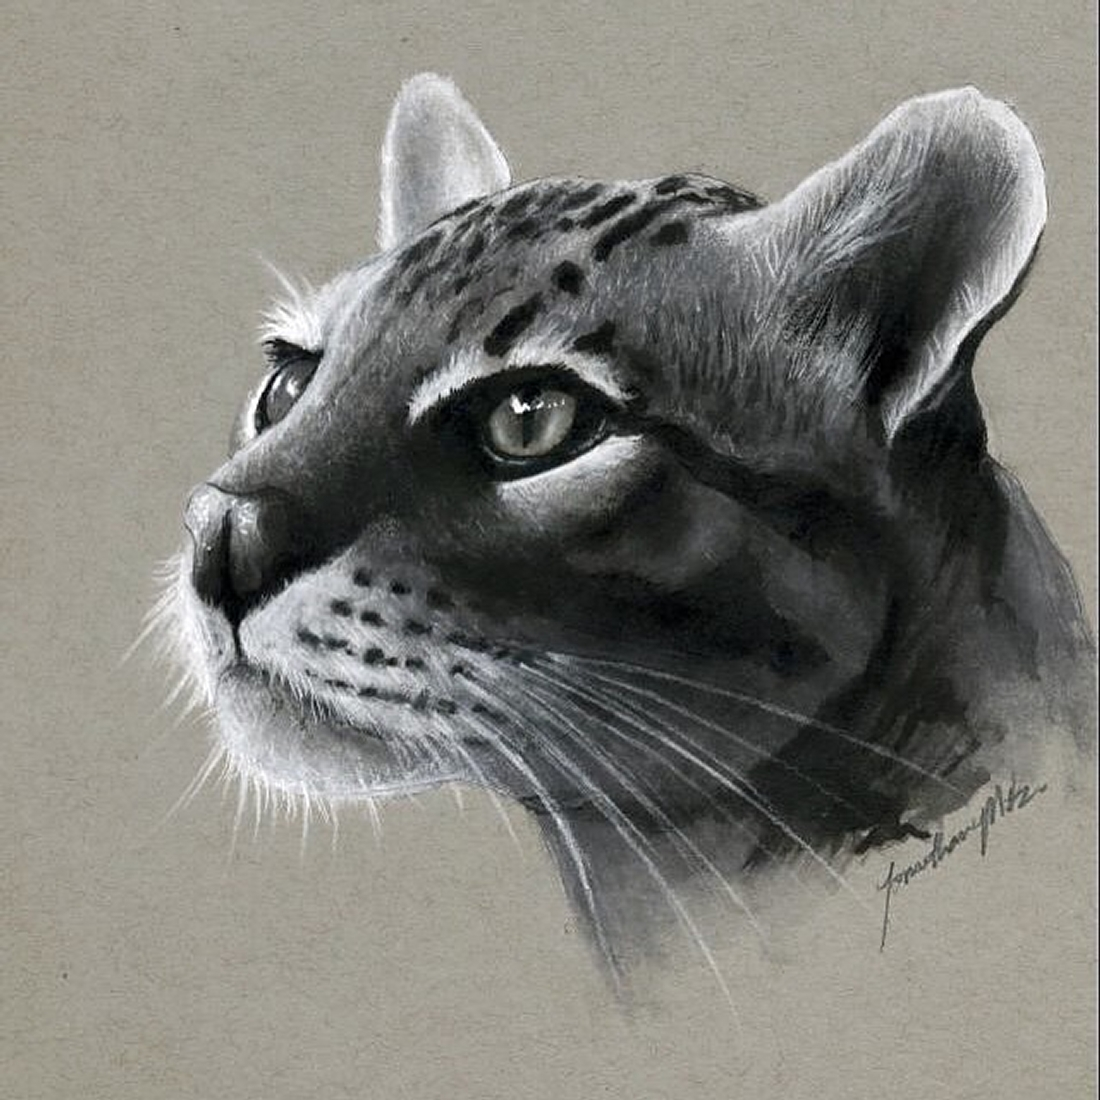 01-Cat-Jonathan-Martinez-Realistic-Pencil-Animal-Drawings-www-designstack-co